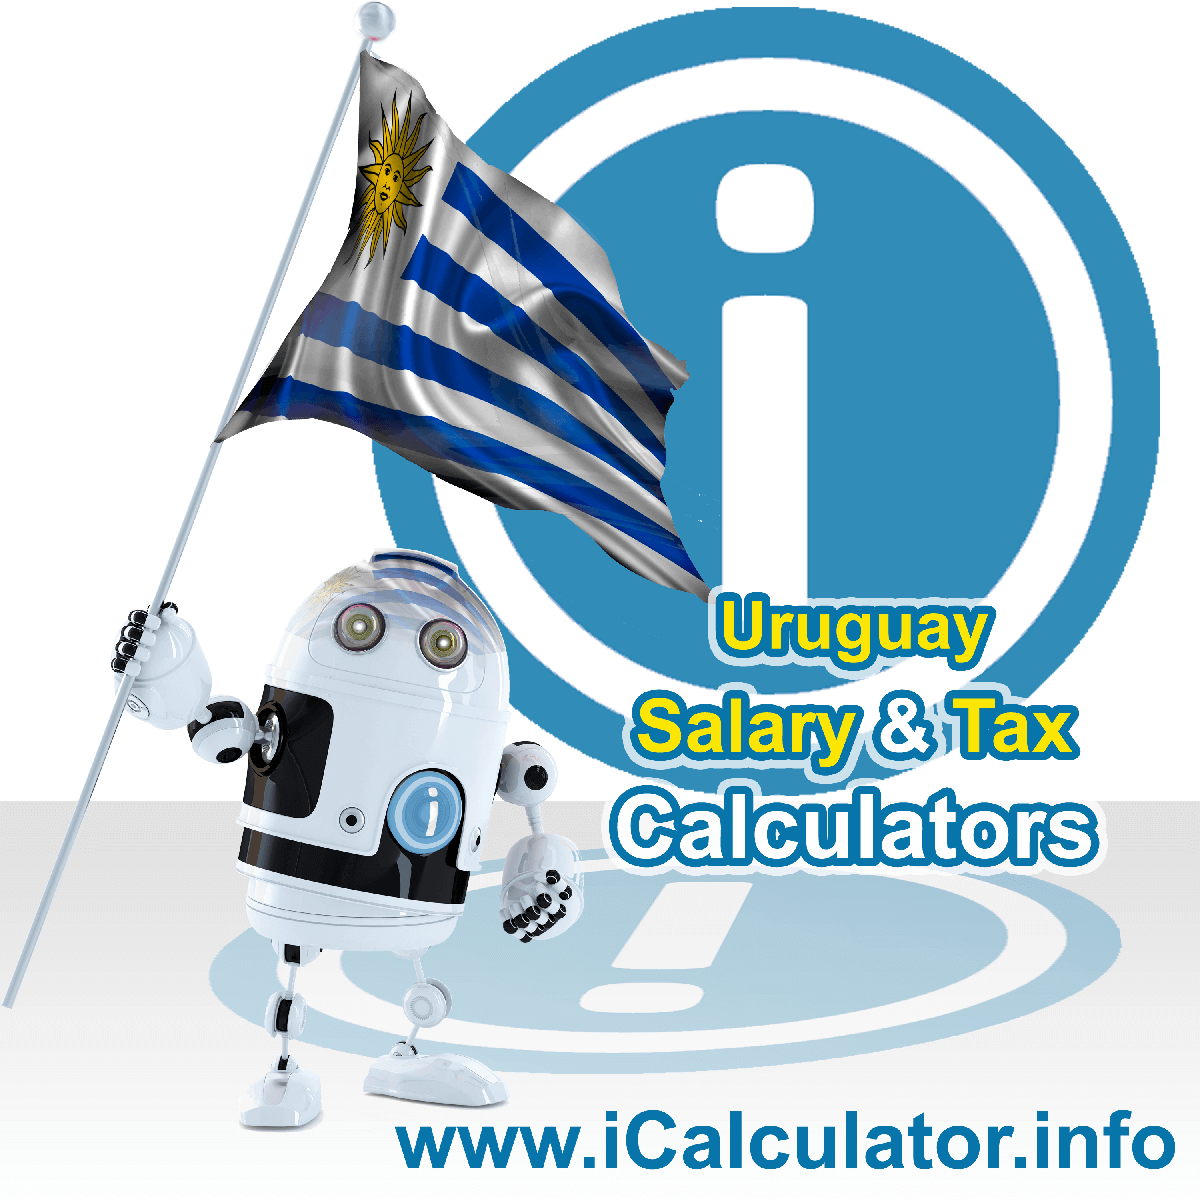 Uruguay Wage Calculator. This image shows the Uruguay flag and information relating to the tax formula for the Uruguay Tax Calculator